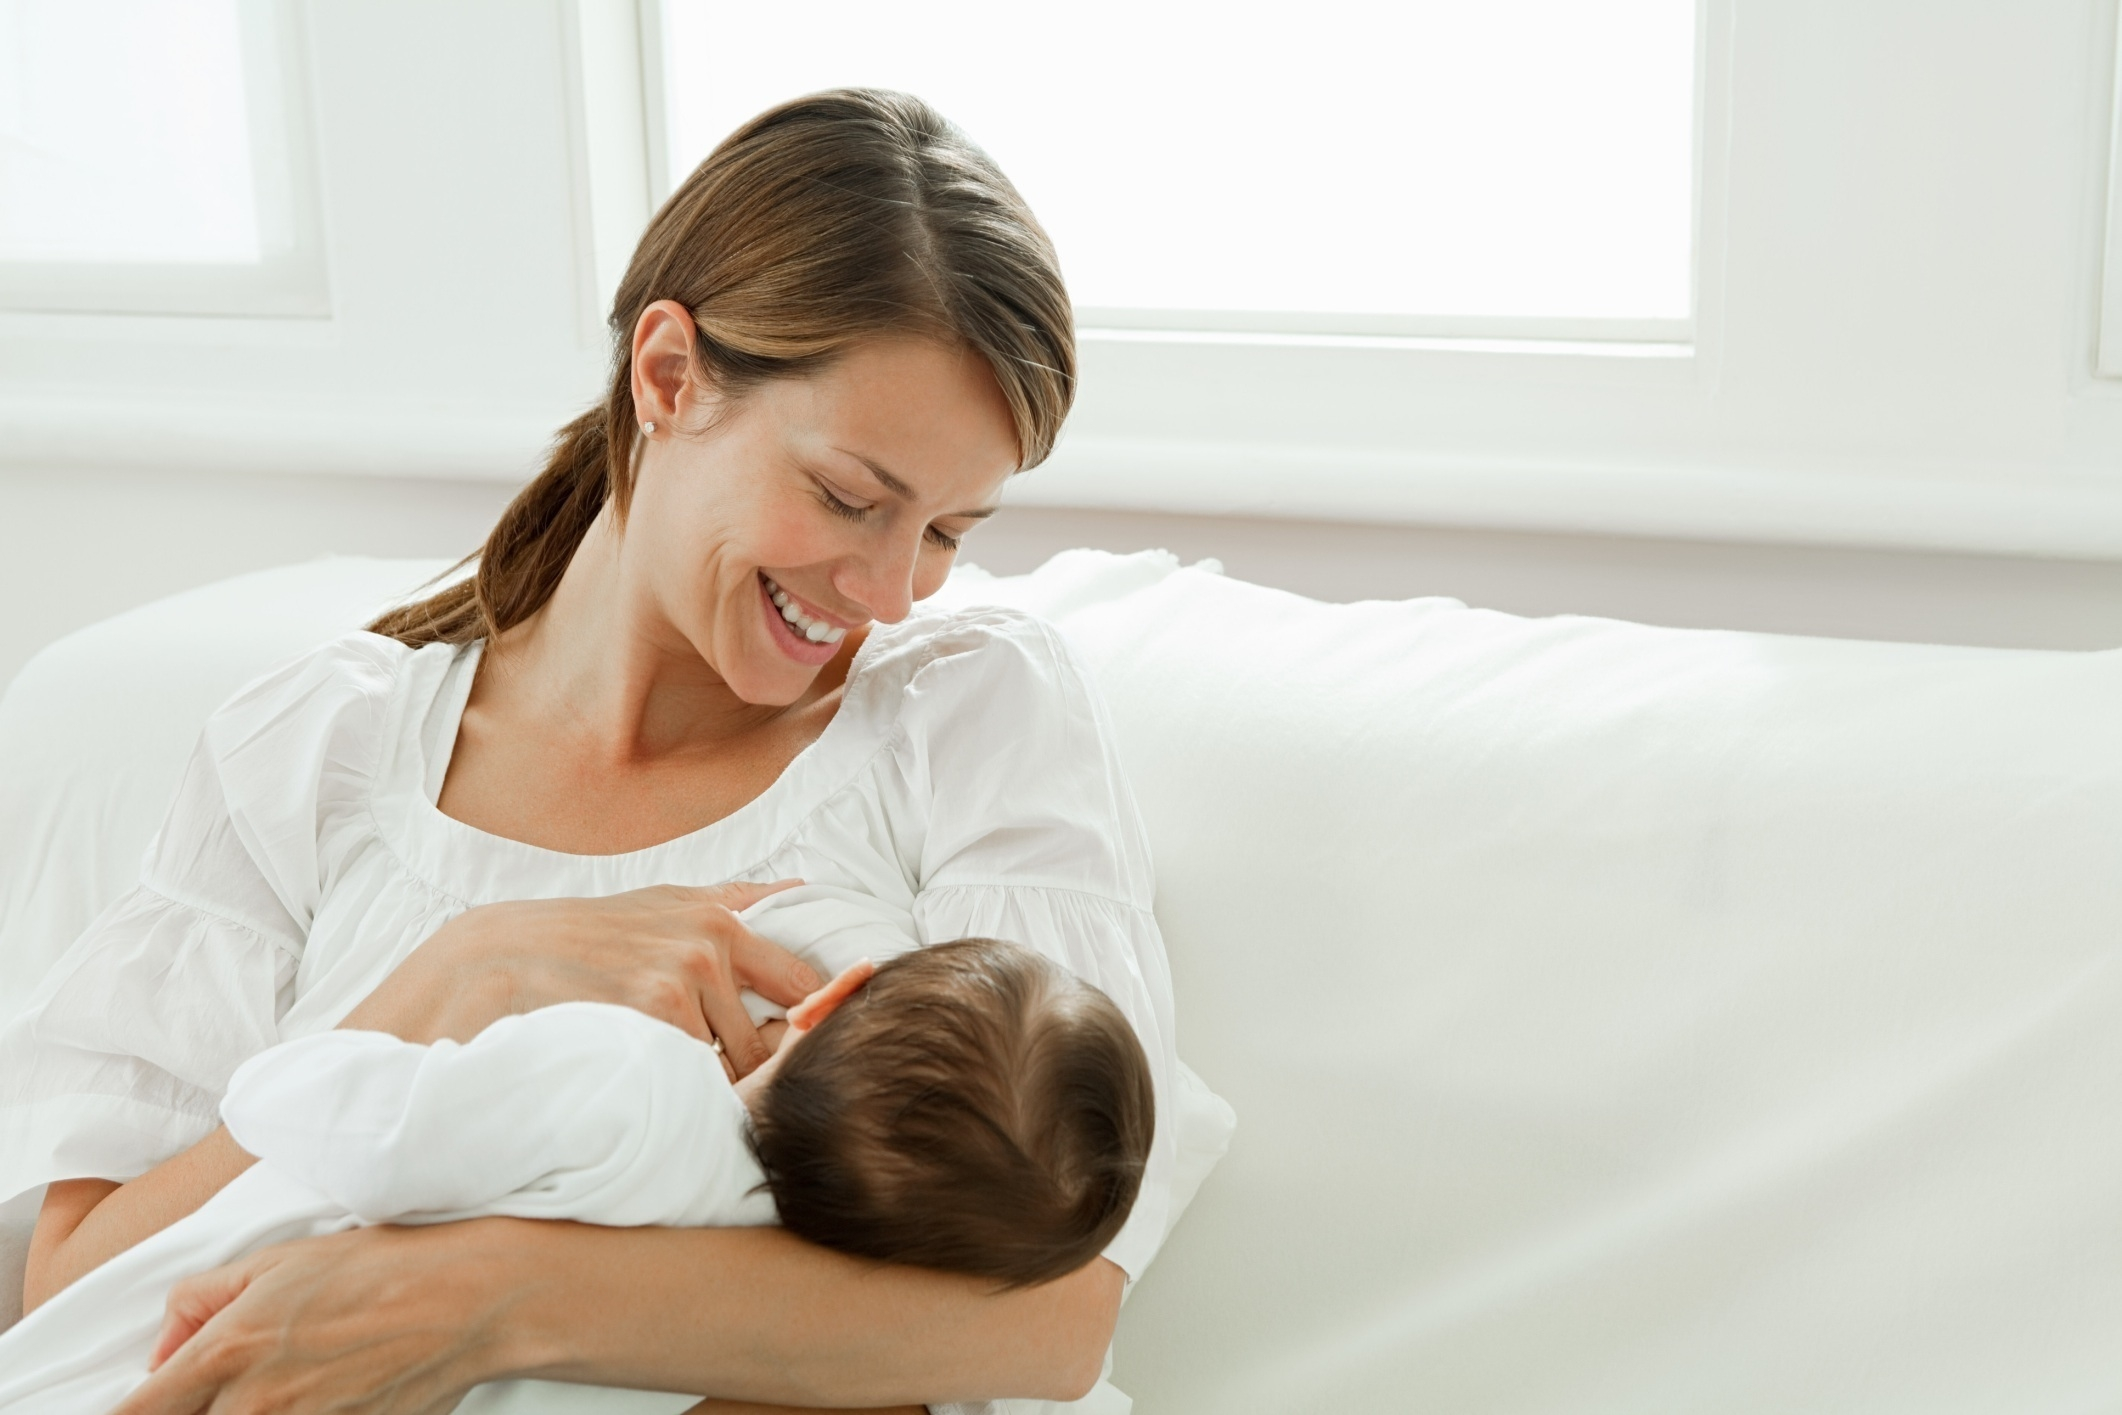 Image: Nursing baby is good for mom too: Breastfeeding found to reduce risk of heart attack, stroke later in life